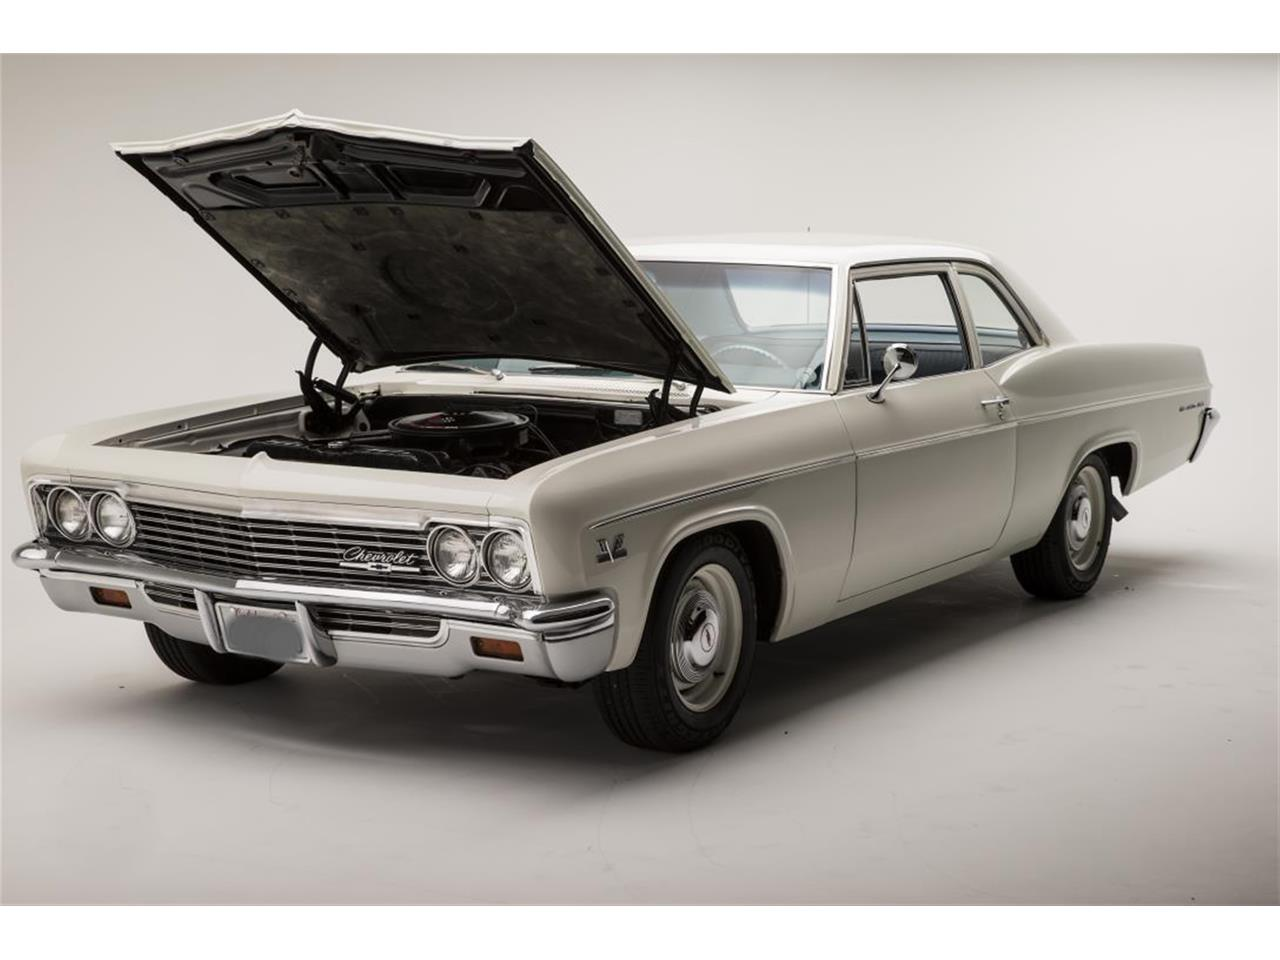 Large Picture of 1966 Chevrolet Bel Air located in California Offered by Classic Car Marketing, Inc. - JBKE